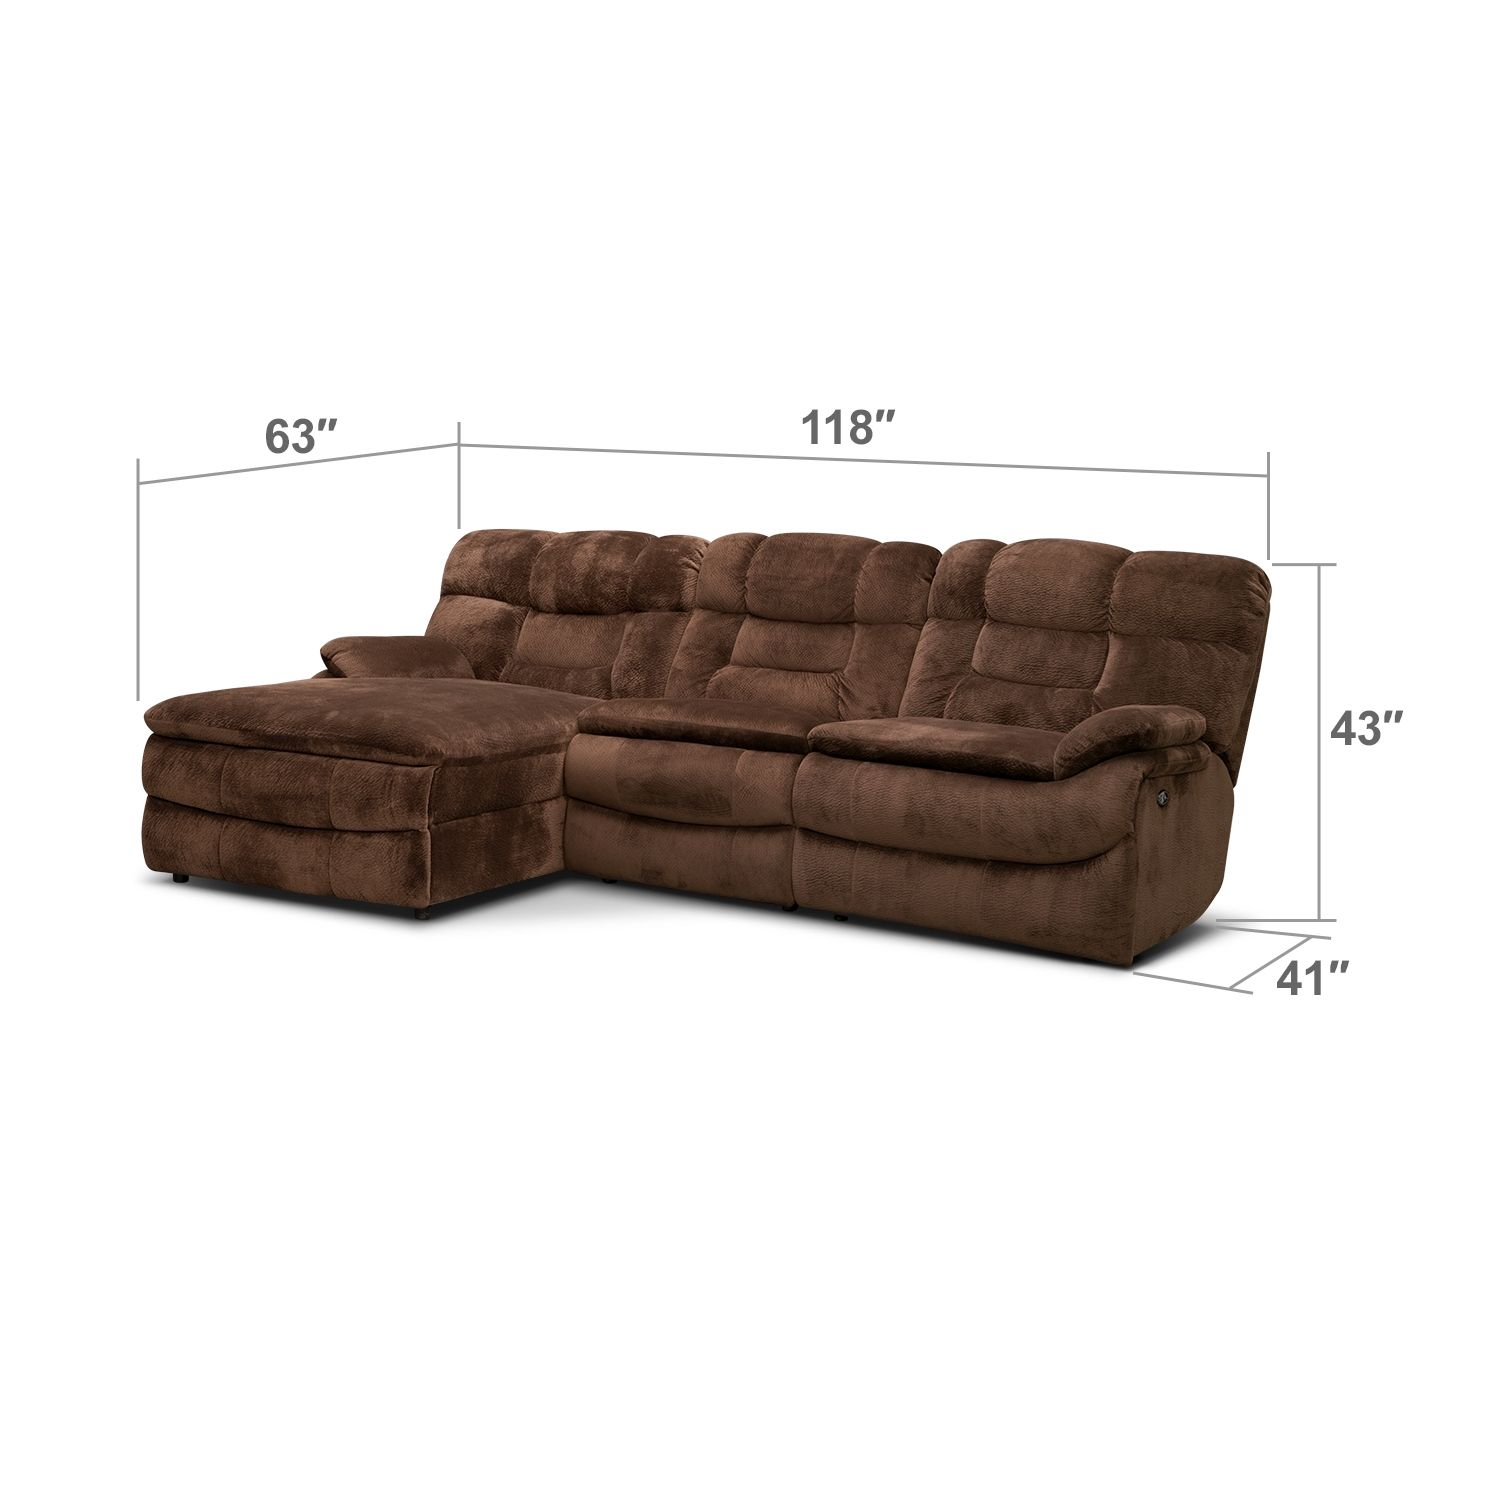 Big Softie 3 Pc. Power Reclining Sectional (Reverse) by One80 | Value City  sc 1 st  Pinterest : one80 sectional - Sectionals, Sofas & Couches